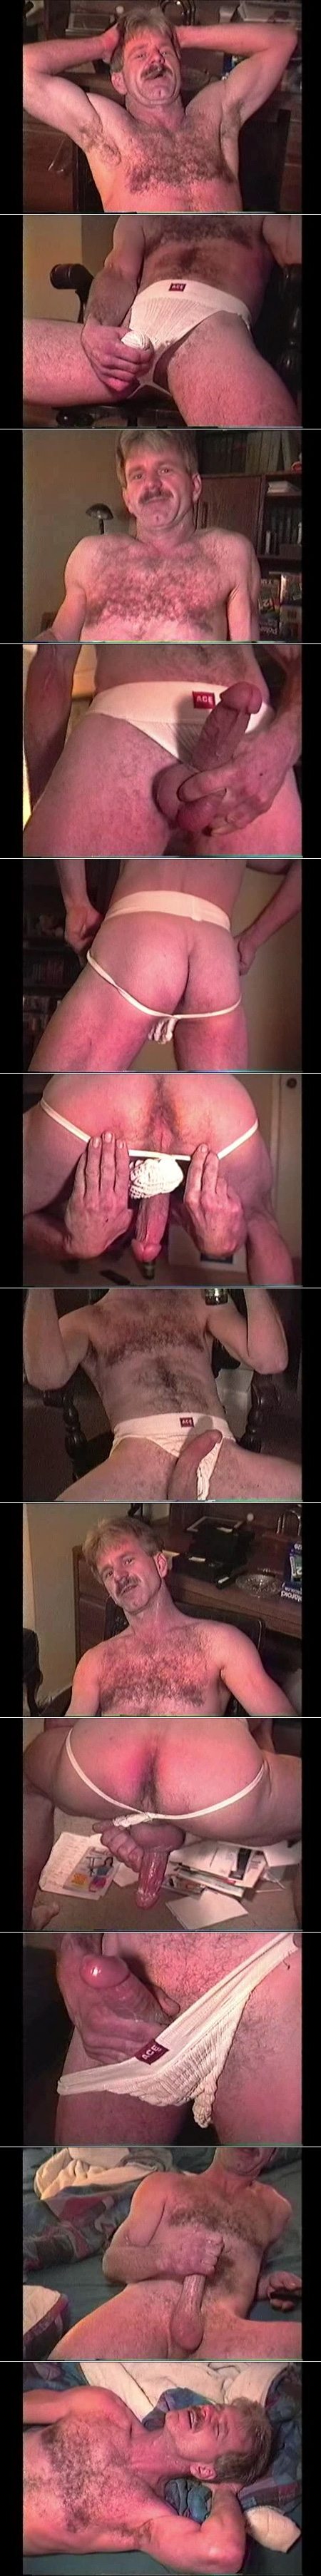 Hairy Daddy jacking off in his worn out jockstrap.